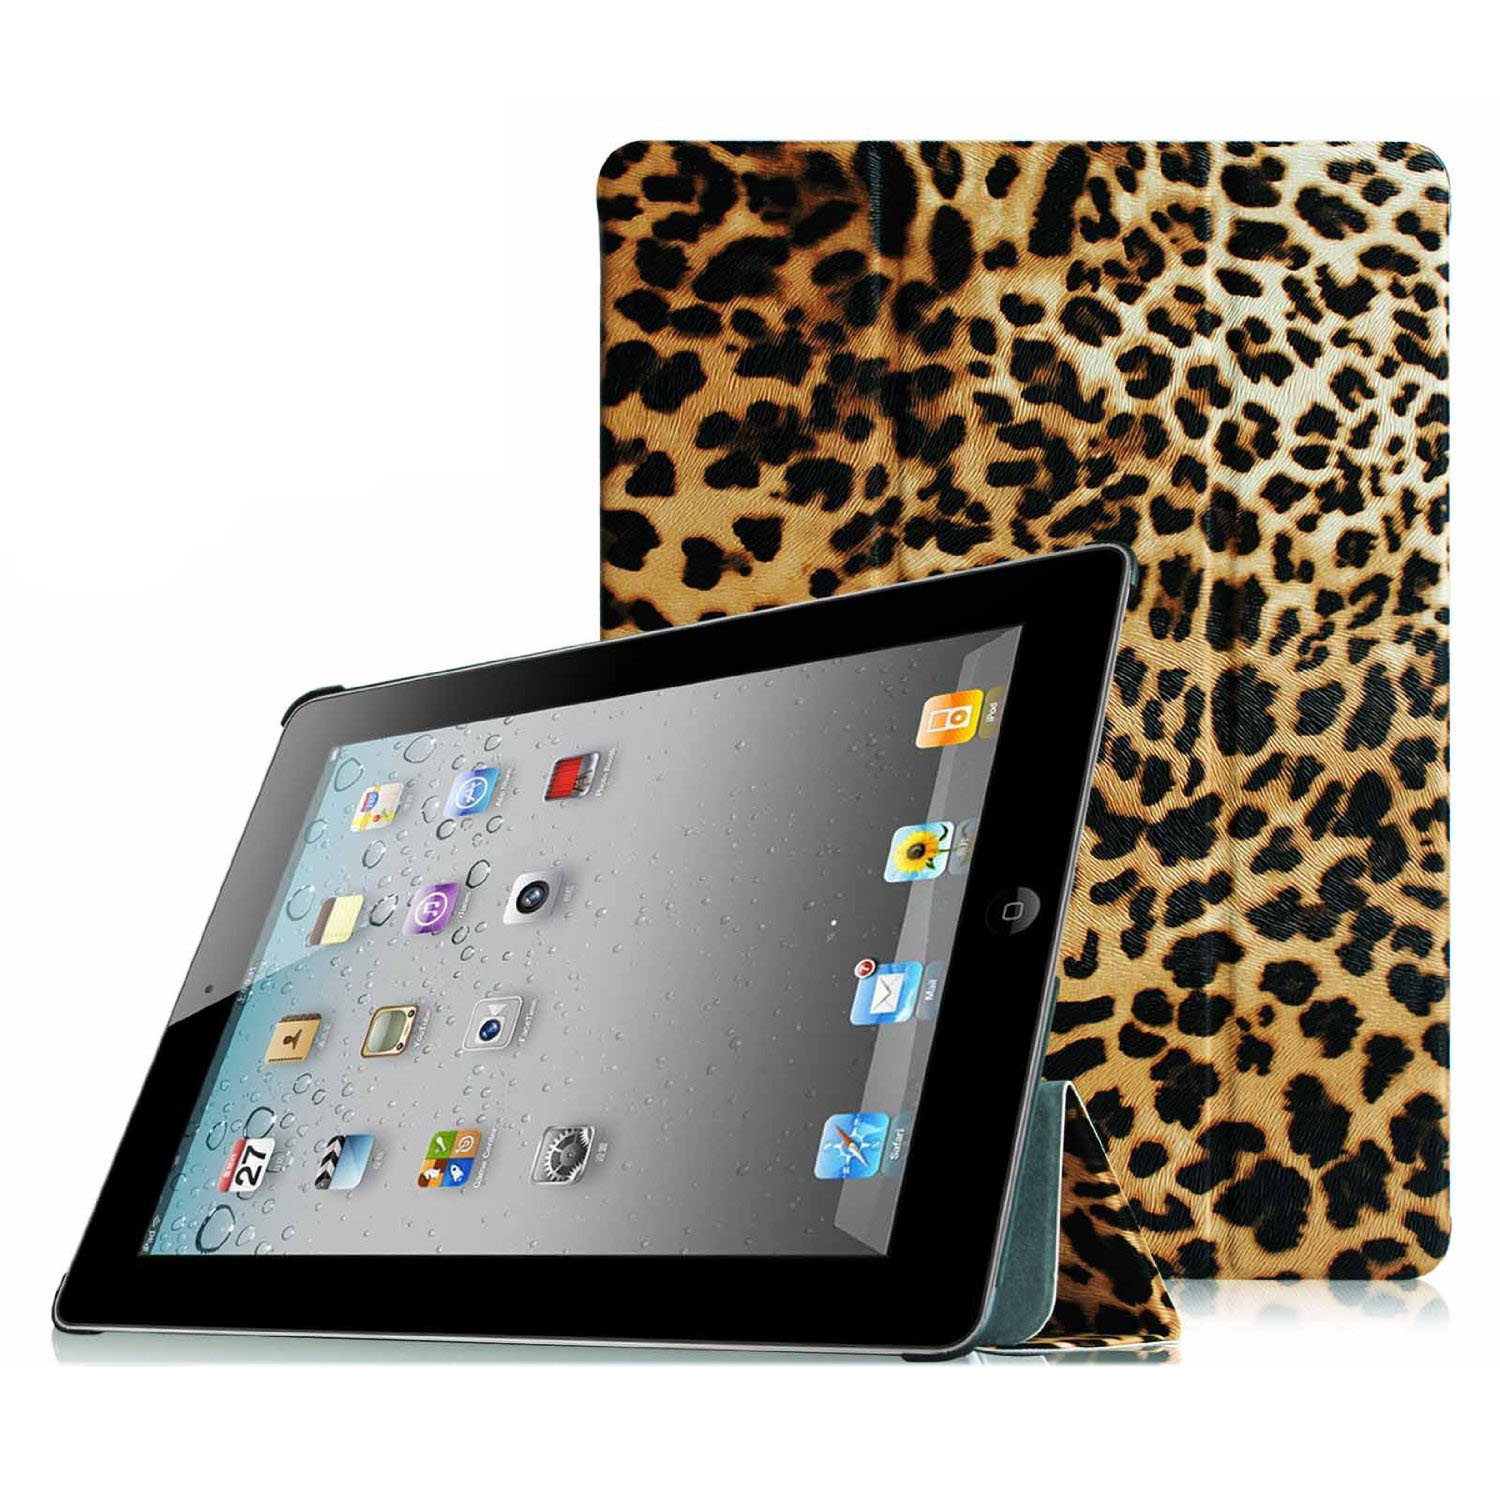 Fintie SmartShell Case for Apple iPad 4th Generation with Retina Display, iPad 3 & iPad 2, Leopard Brown